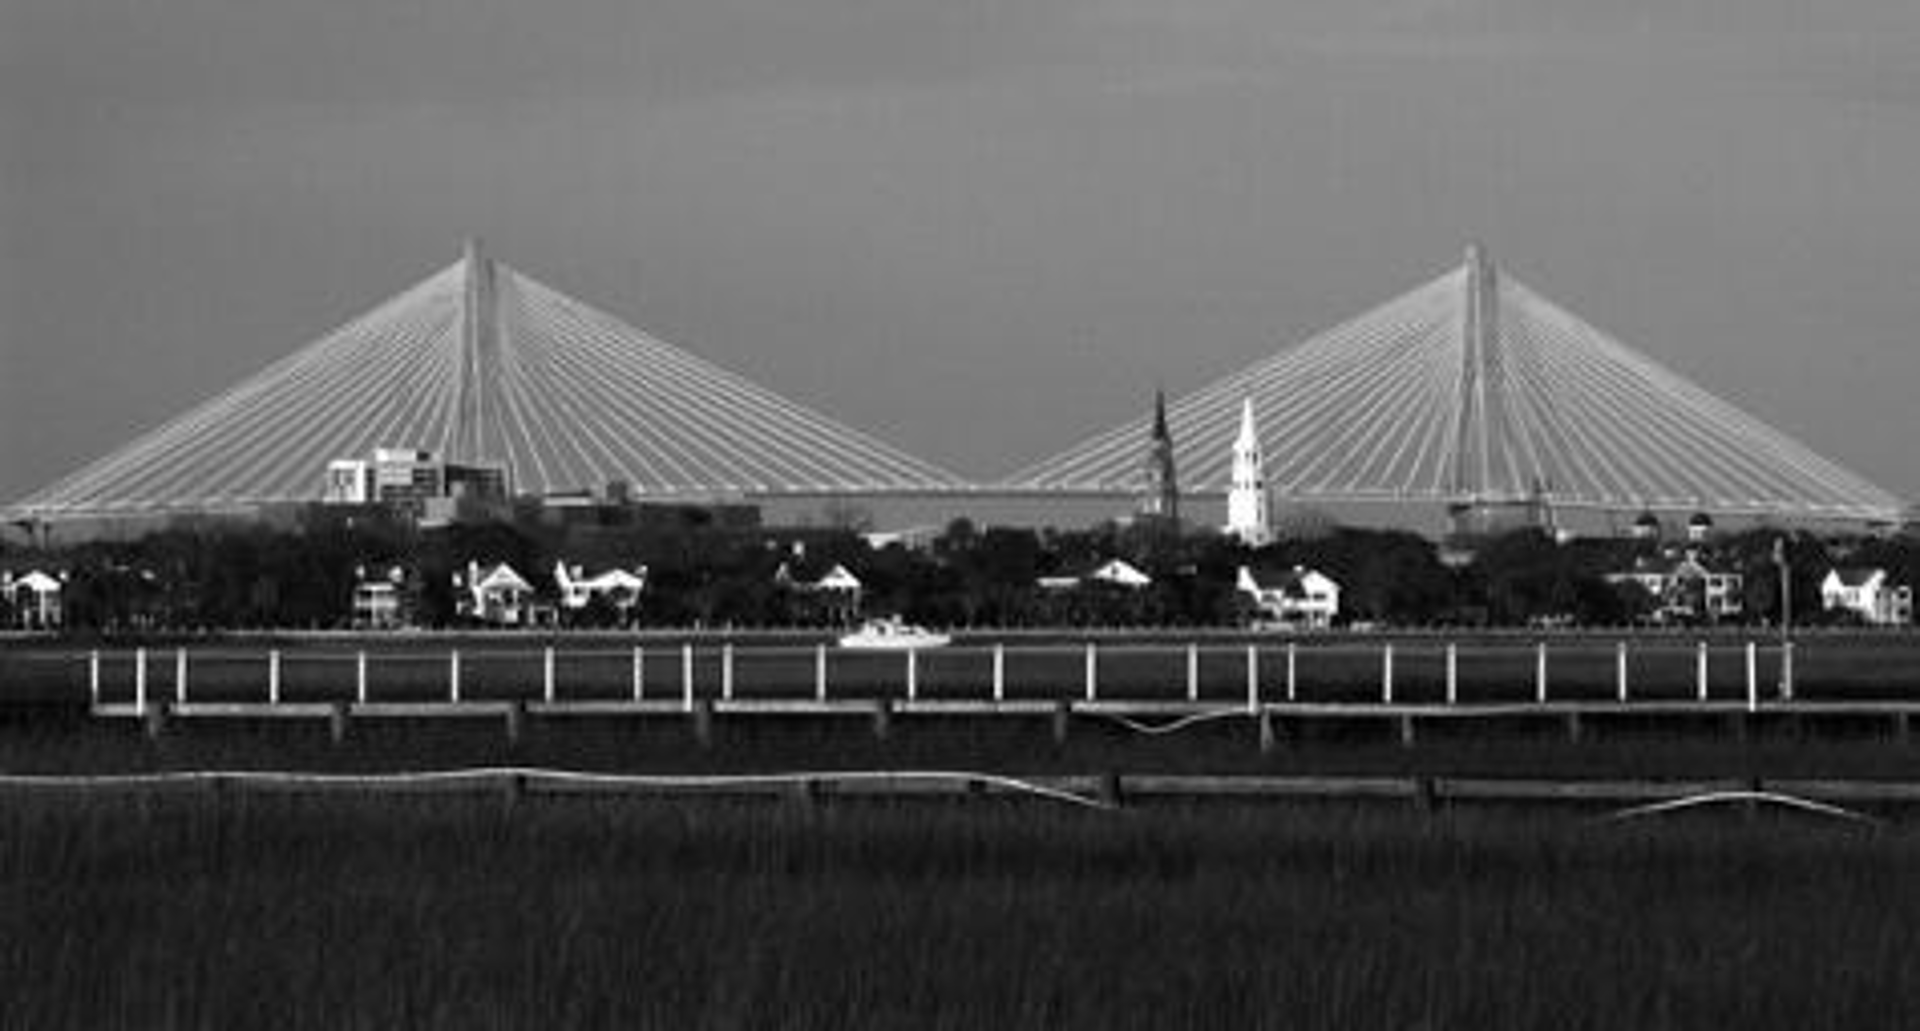 Steeples and Spires, Charleston by Ron Rocz